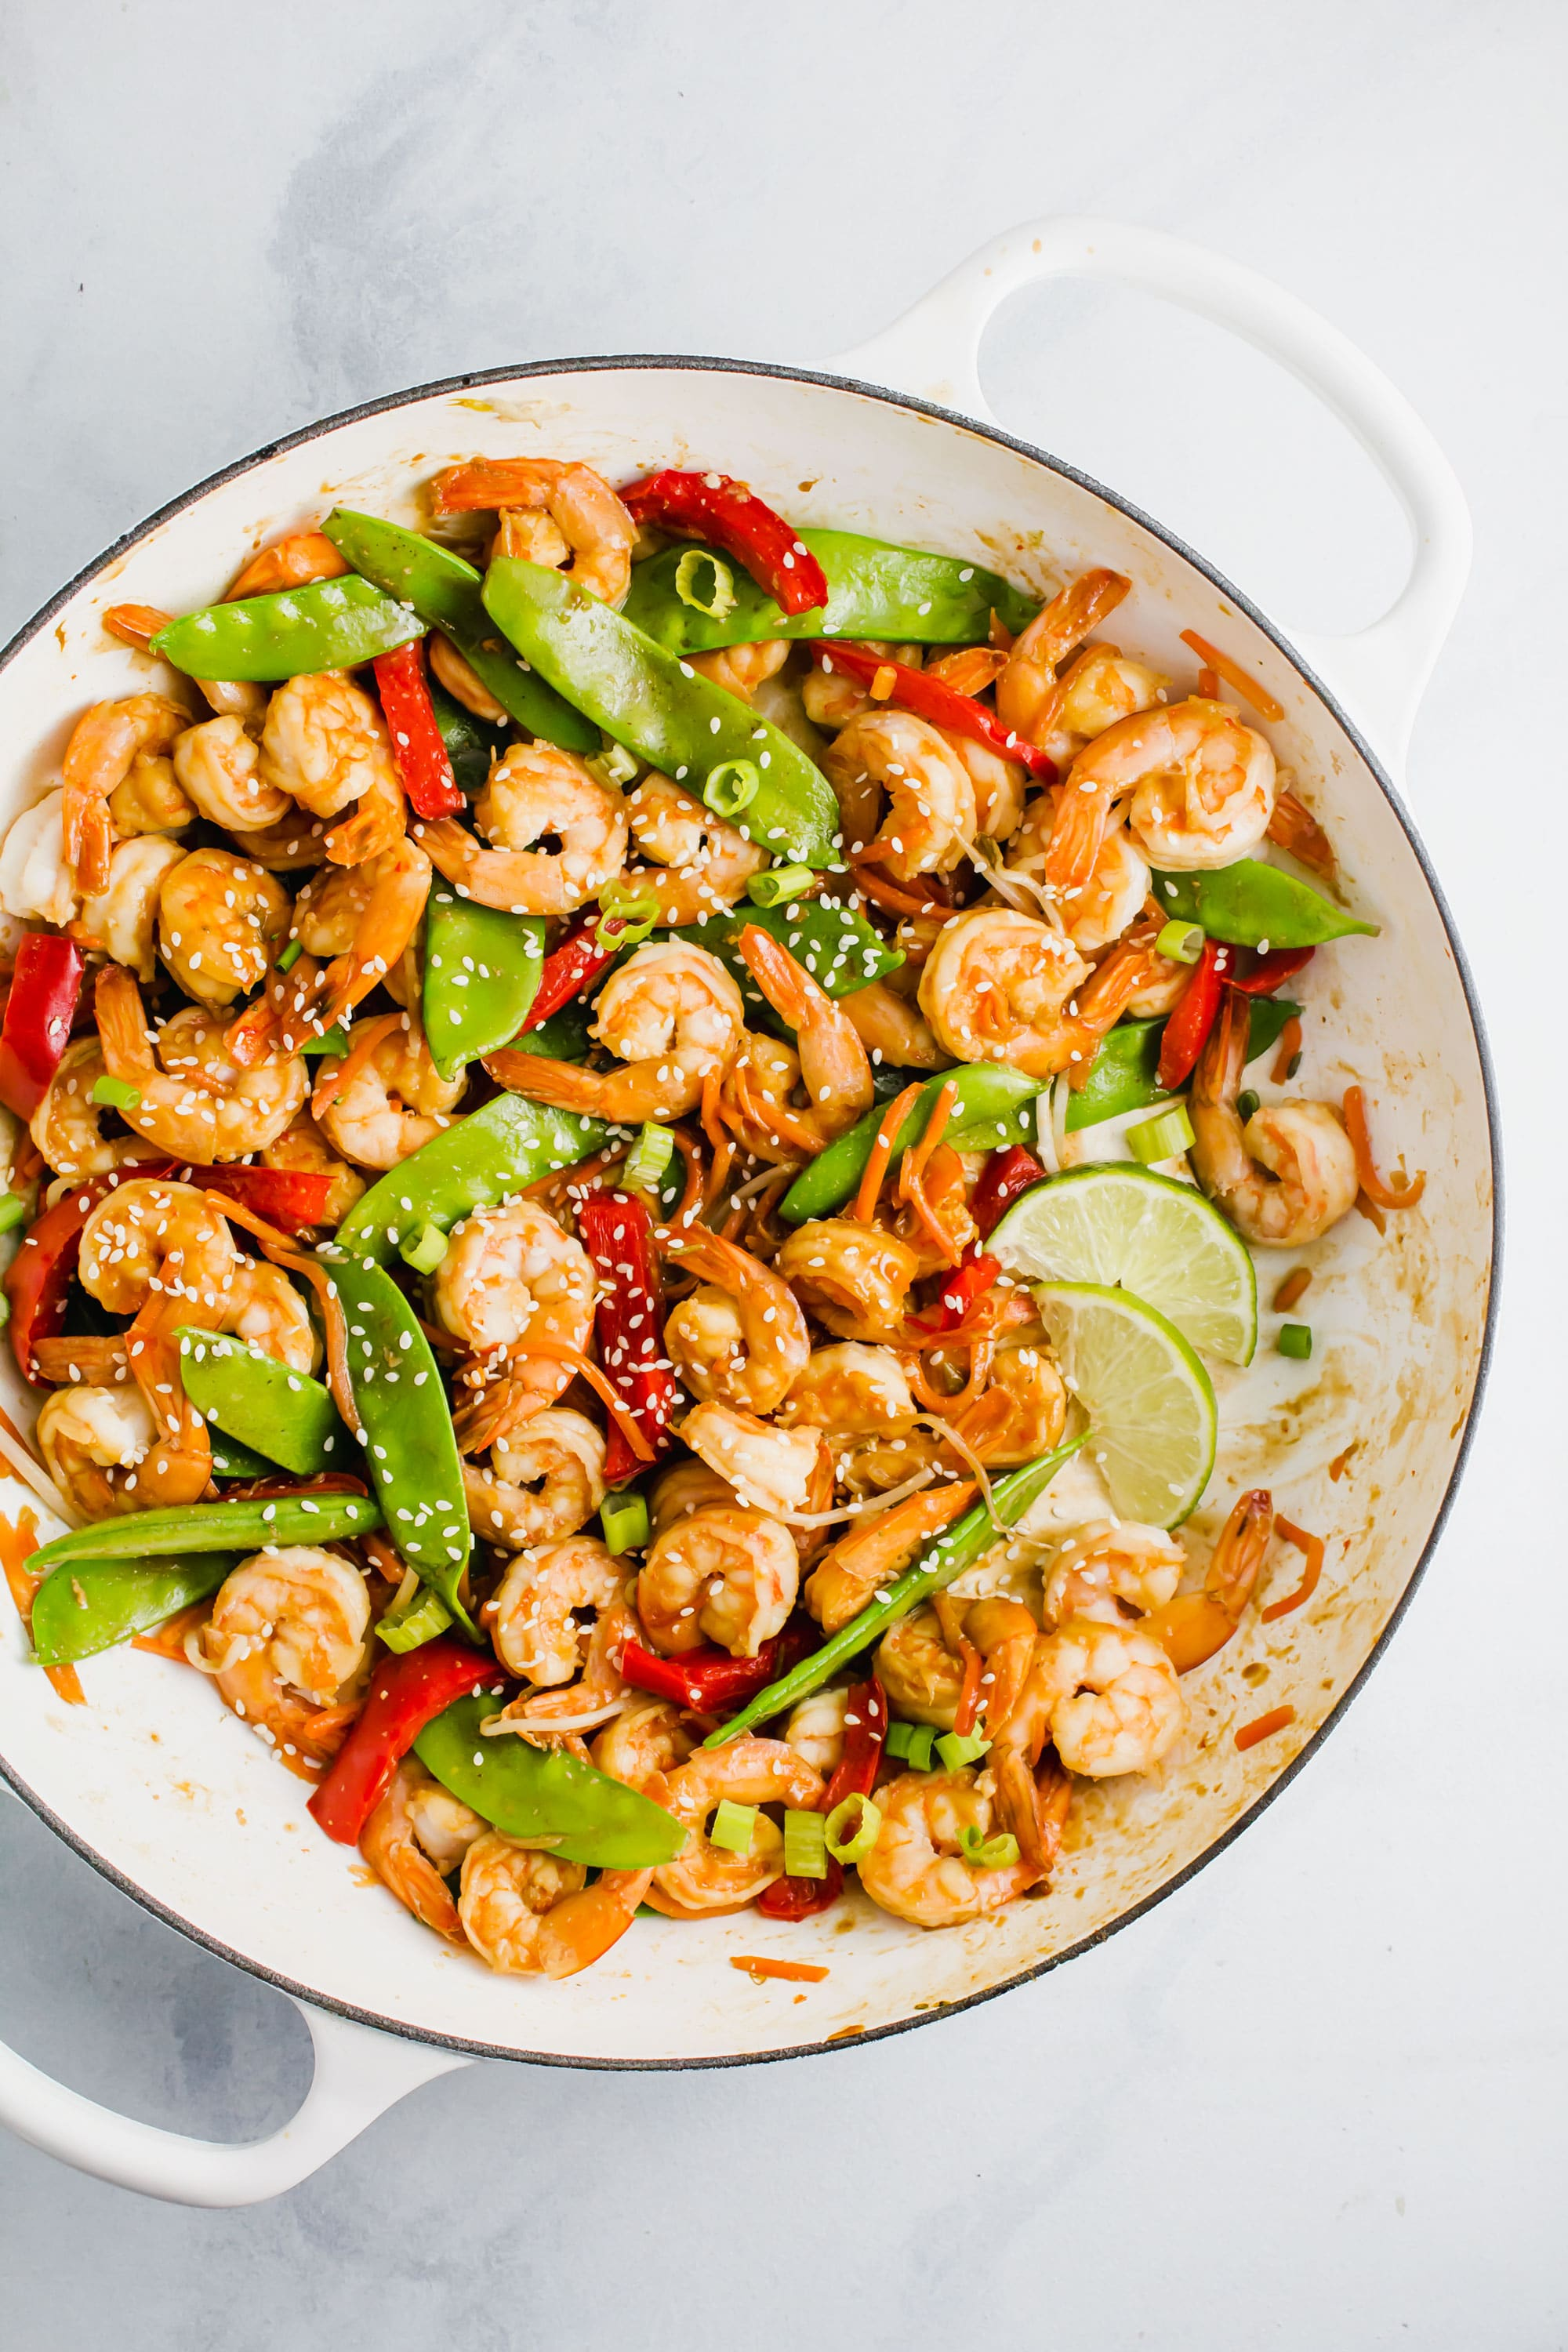 Miso Glazed Shrimp Stir-Fry in a white skillet